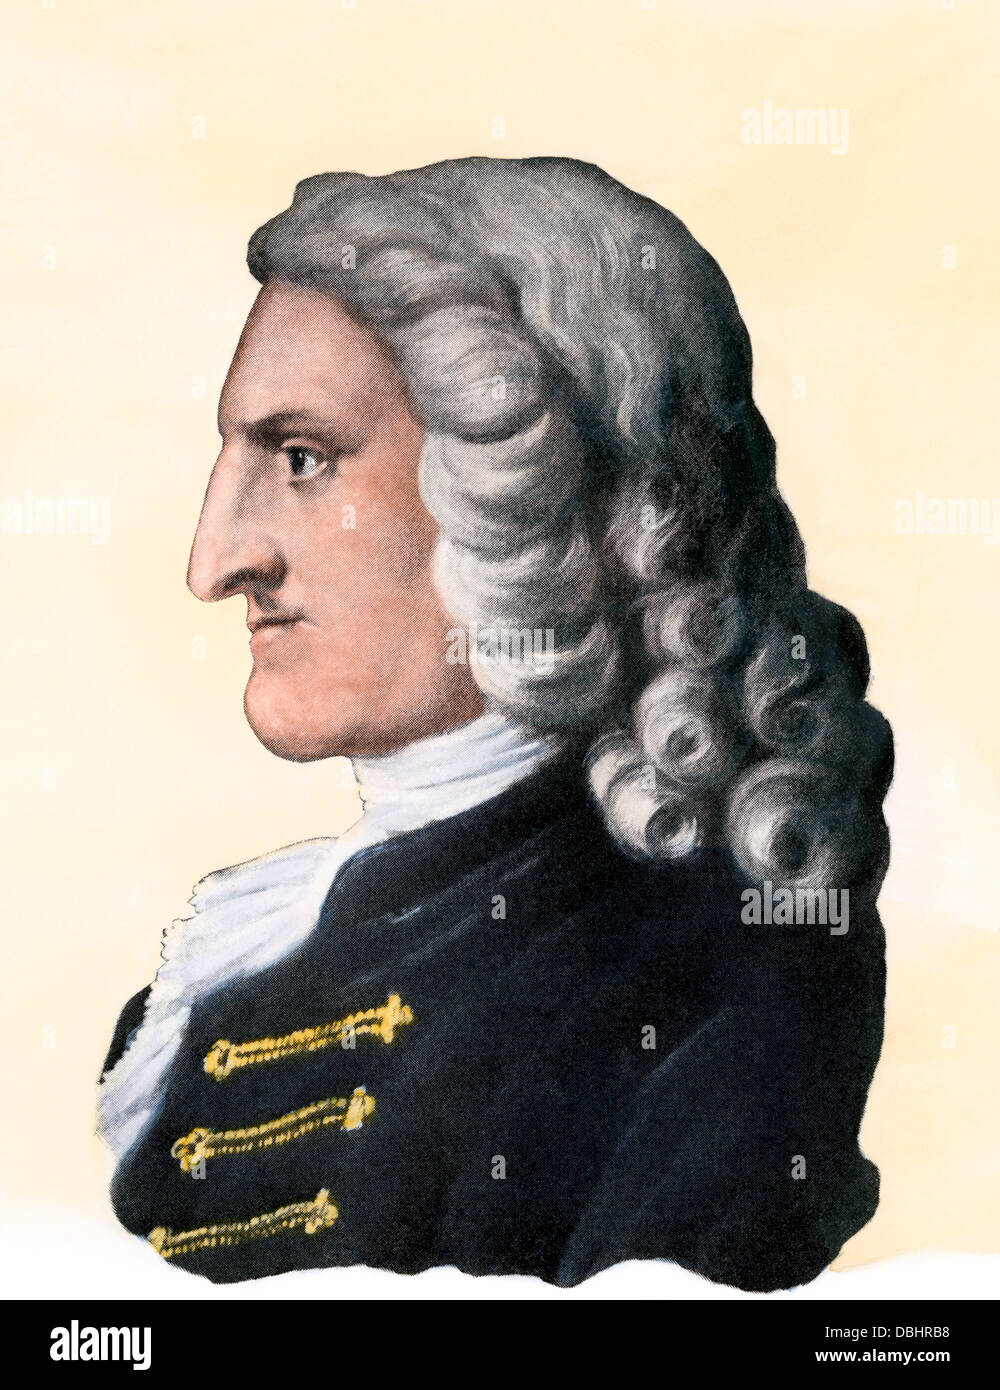 English novelist Henry Fielding. Hand-colored halftone reproduction of a portrait - Stock Image